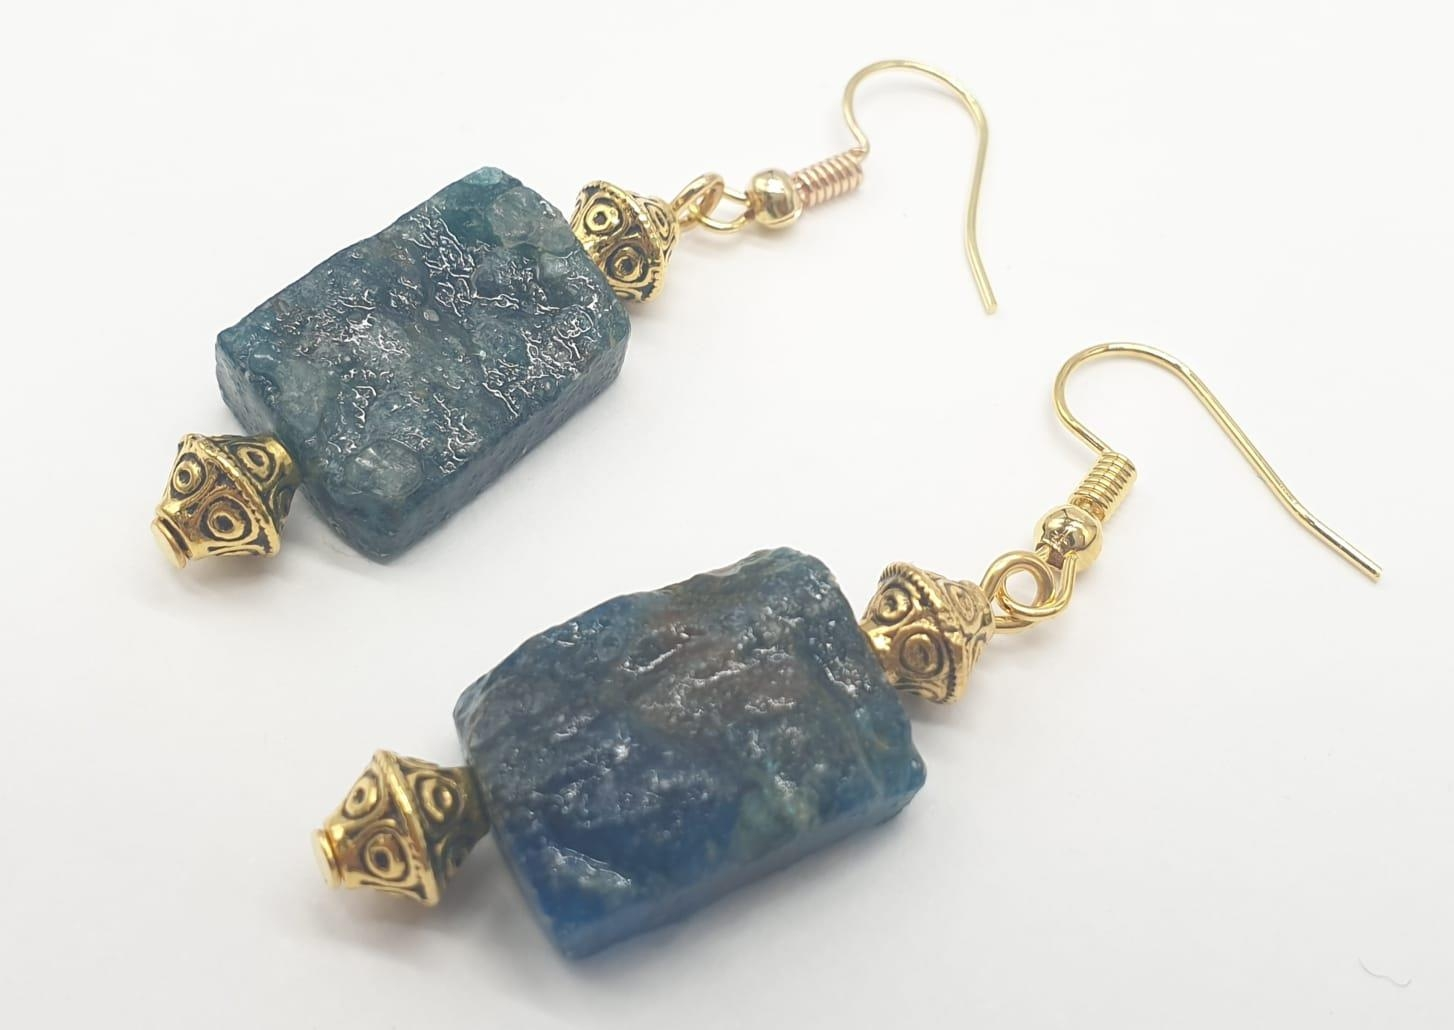 A necklace and earrings set made of Brazilian bluish apatite in its natural state. In a gift box, - Image 2 of 9